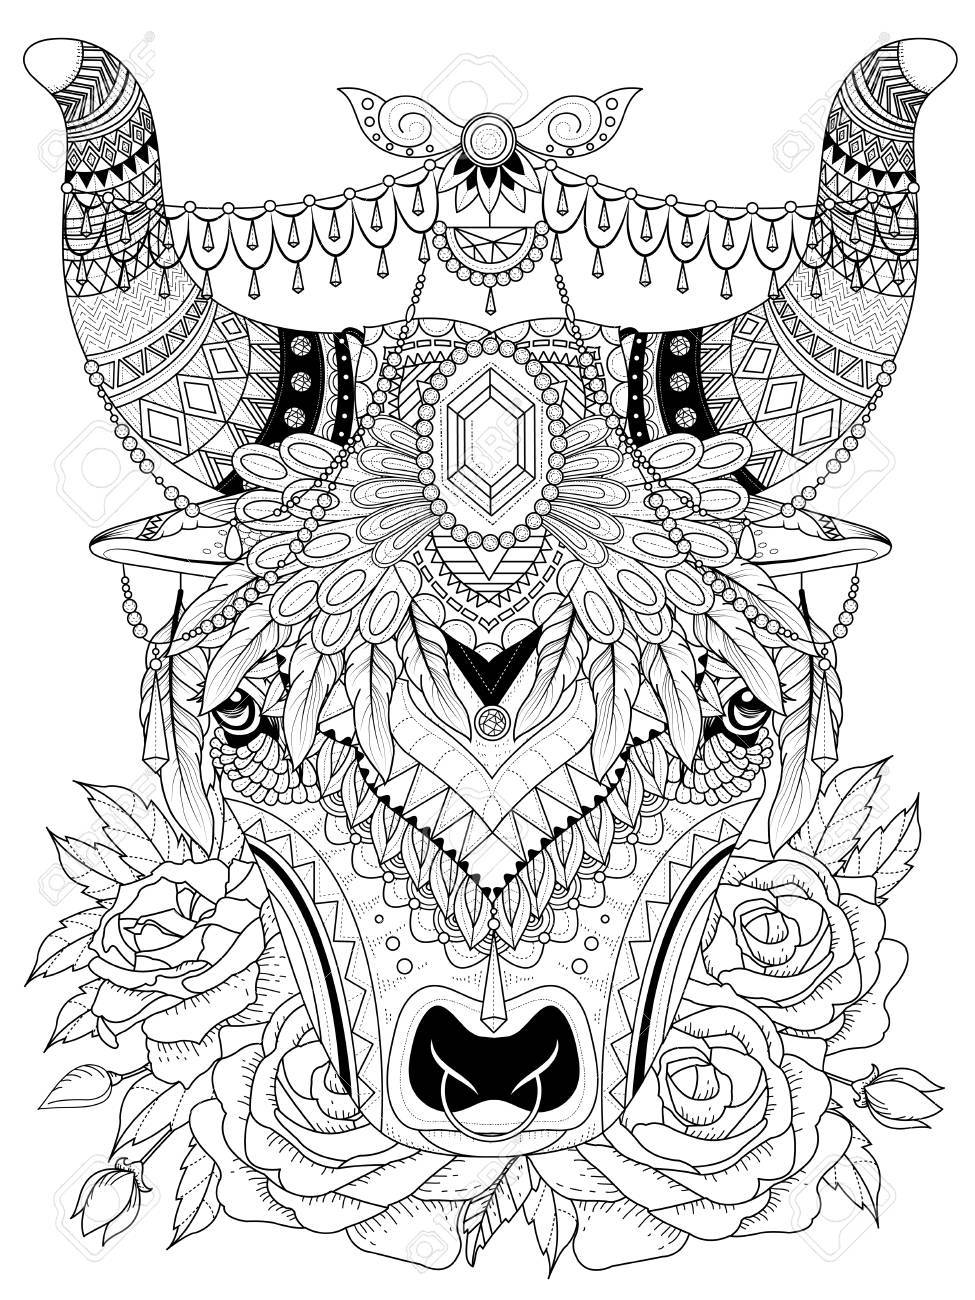 Coloring pages yak - Free Coloring Pages Yak Vector Adult Coloring Page Yak With His Splendid Headwear